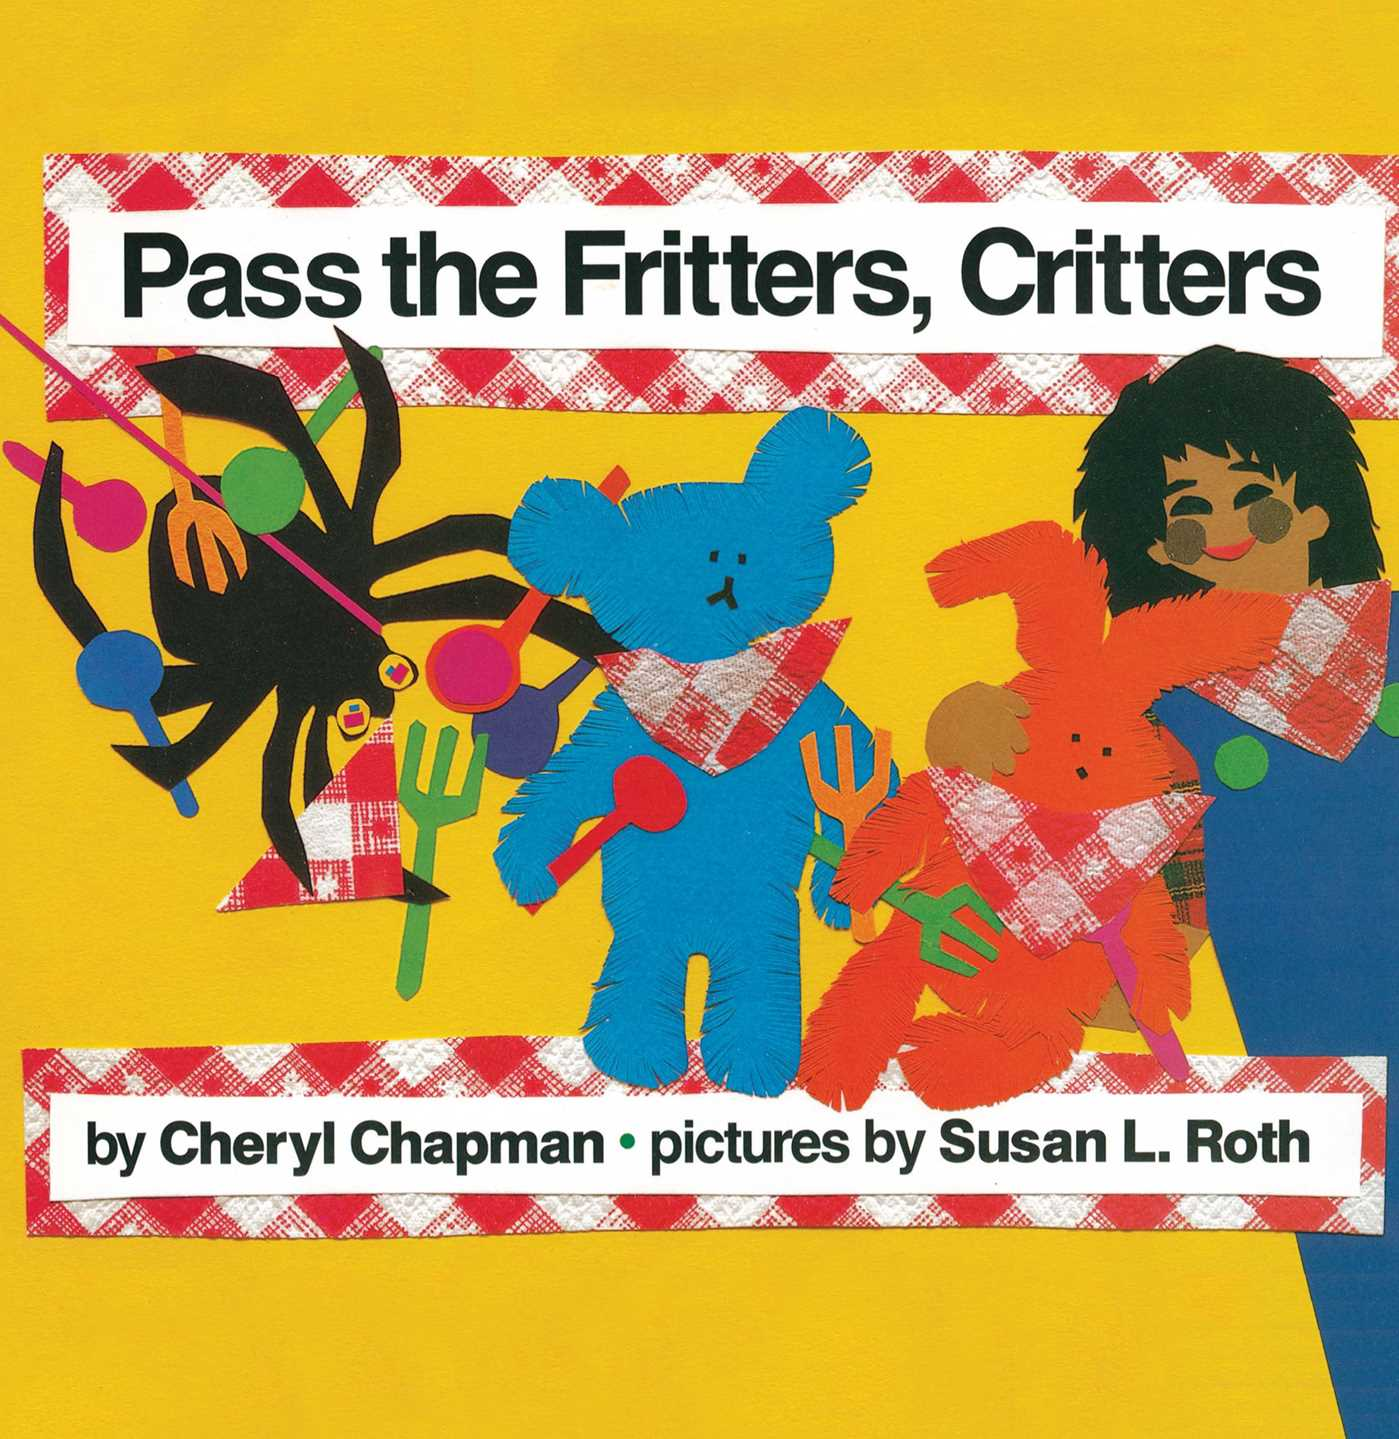 Pass the fritters critters 9781416961604 hr